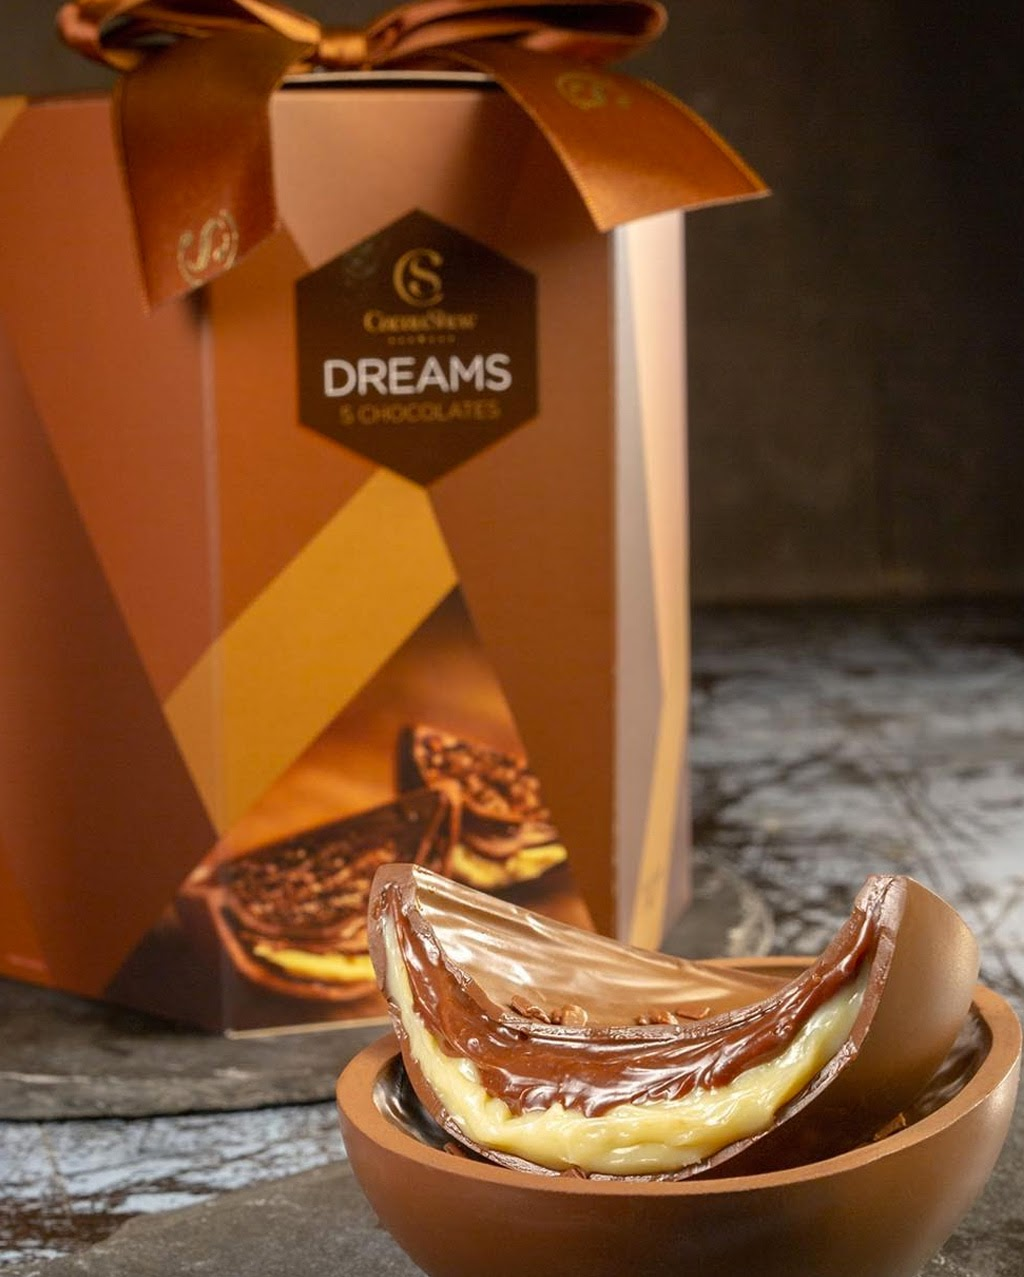 Dreams 5 Chocolates Cacau Show Shopping Galeria